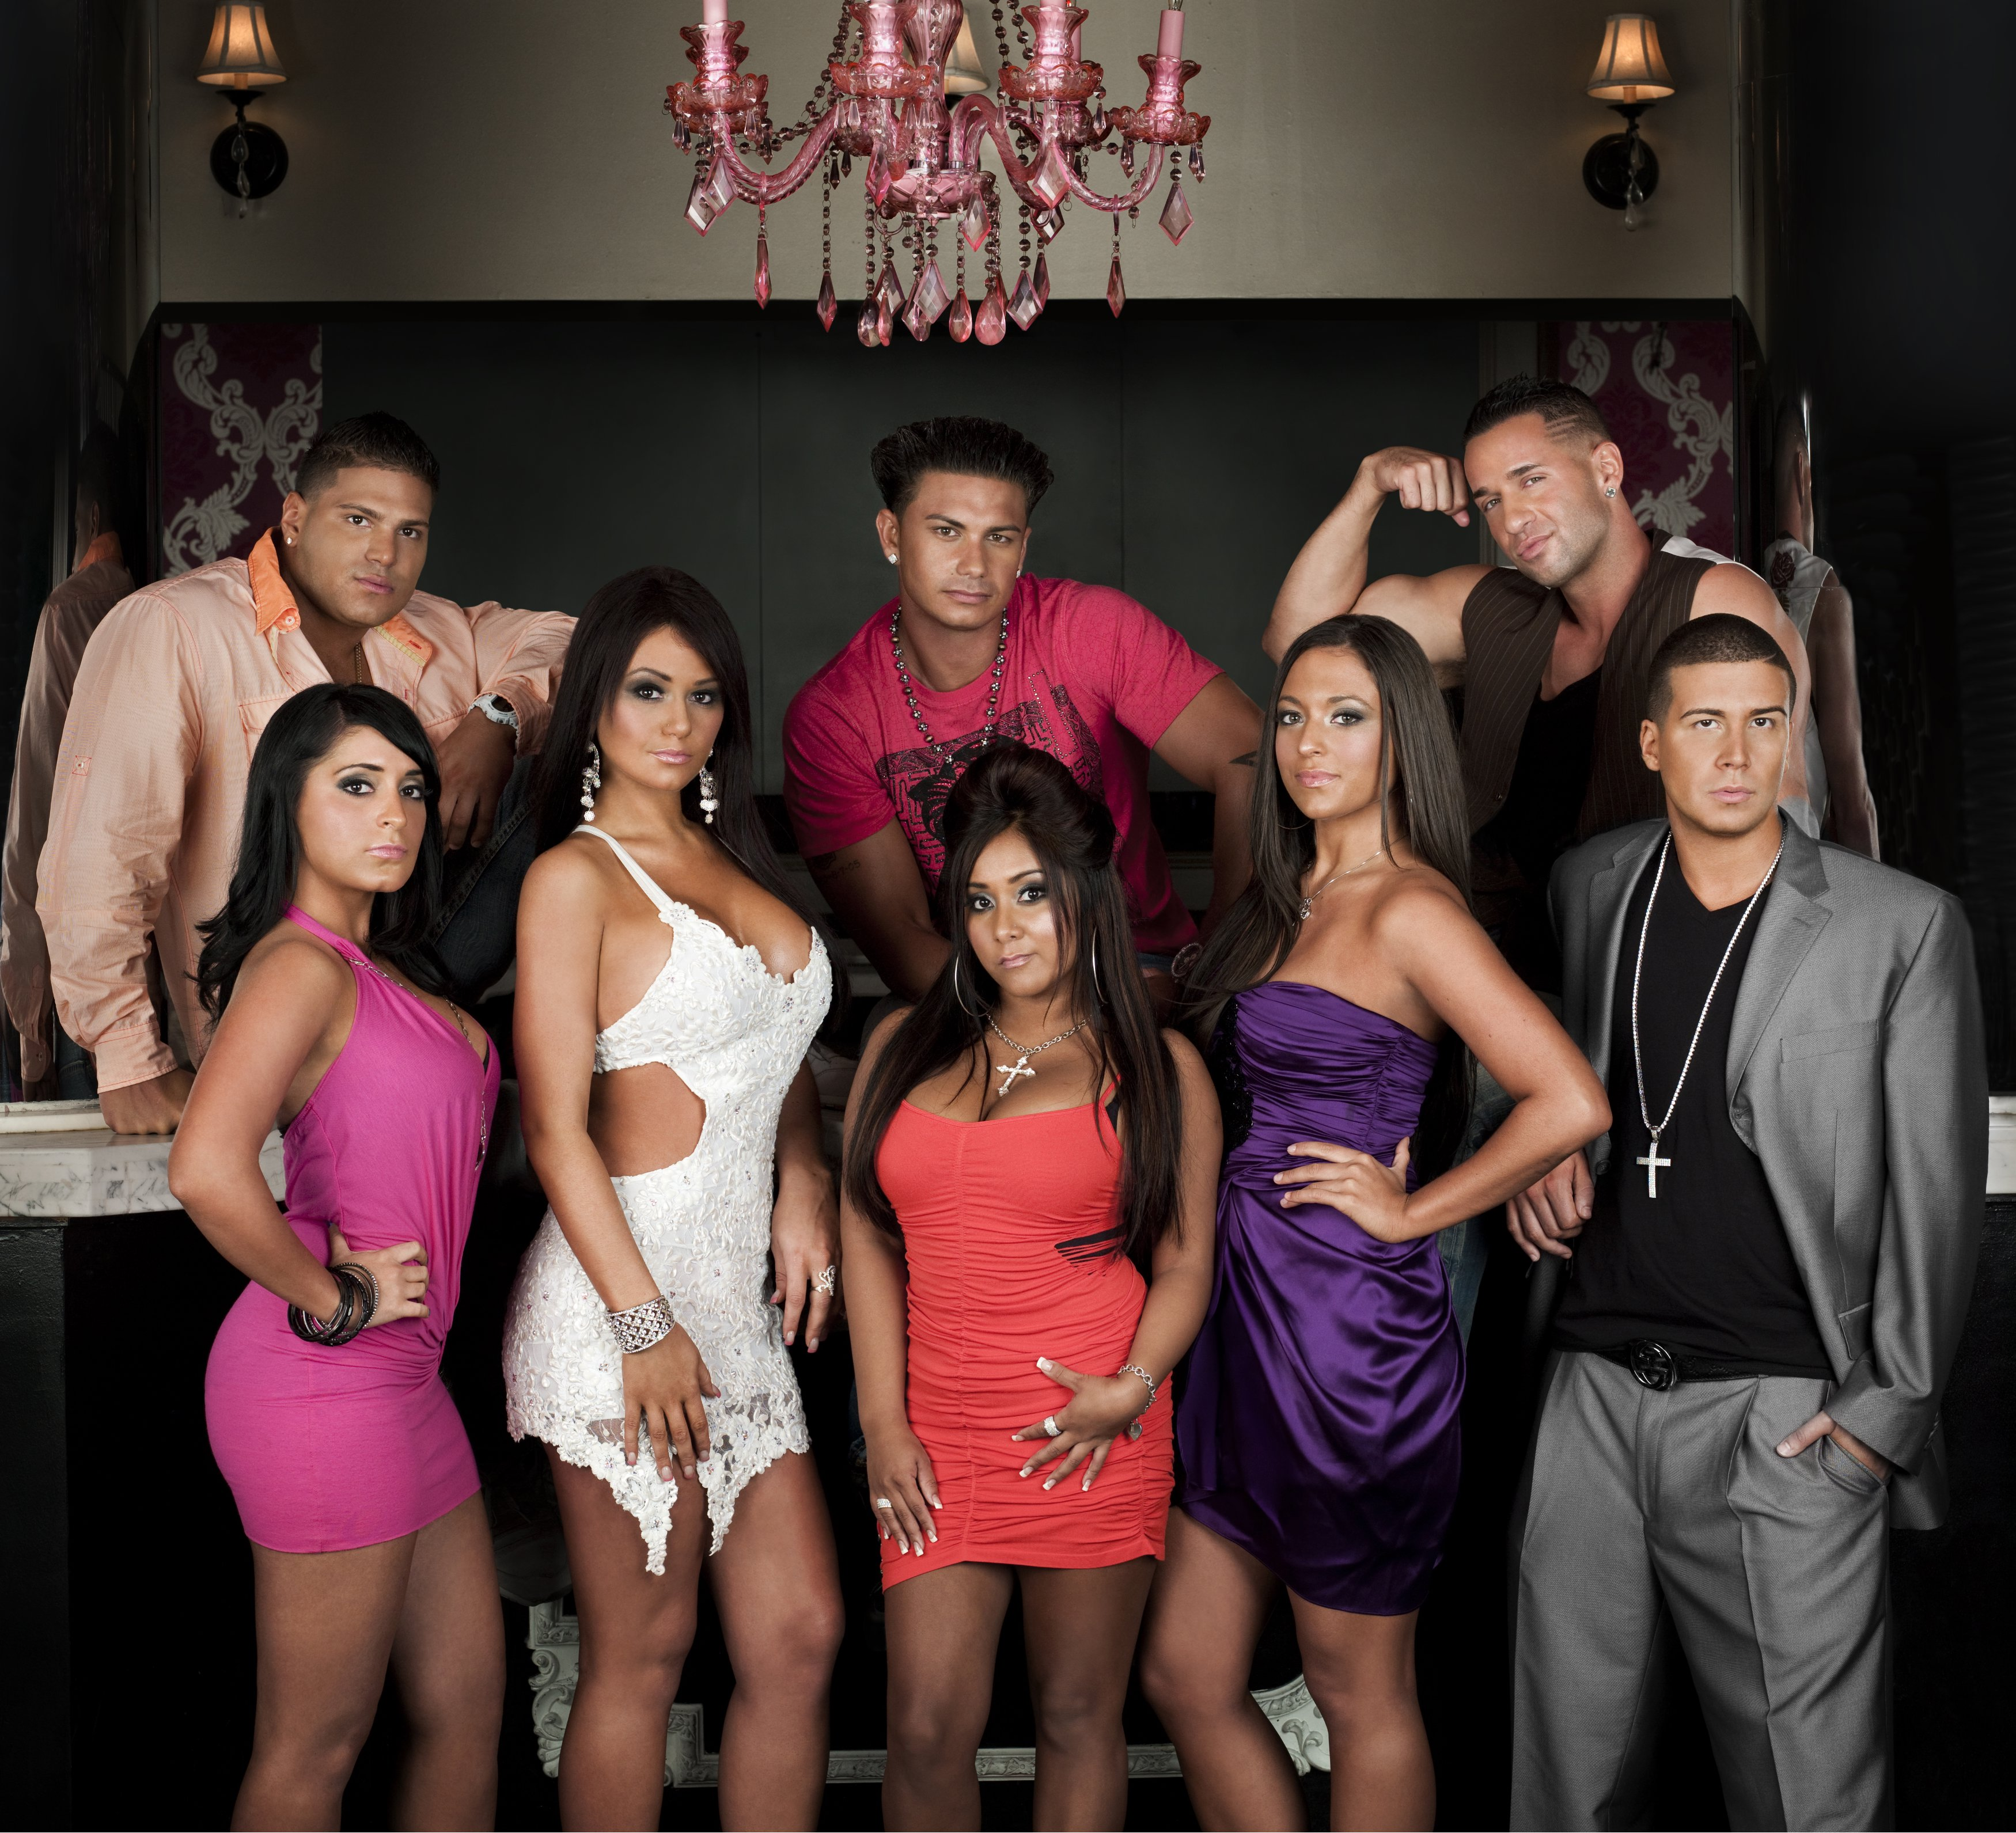 Jersey Shore' Cast Then and Now: Transformation Photos